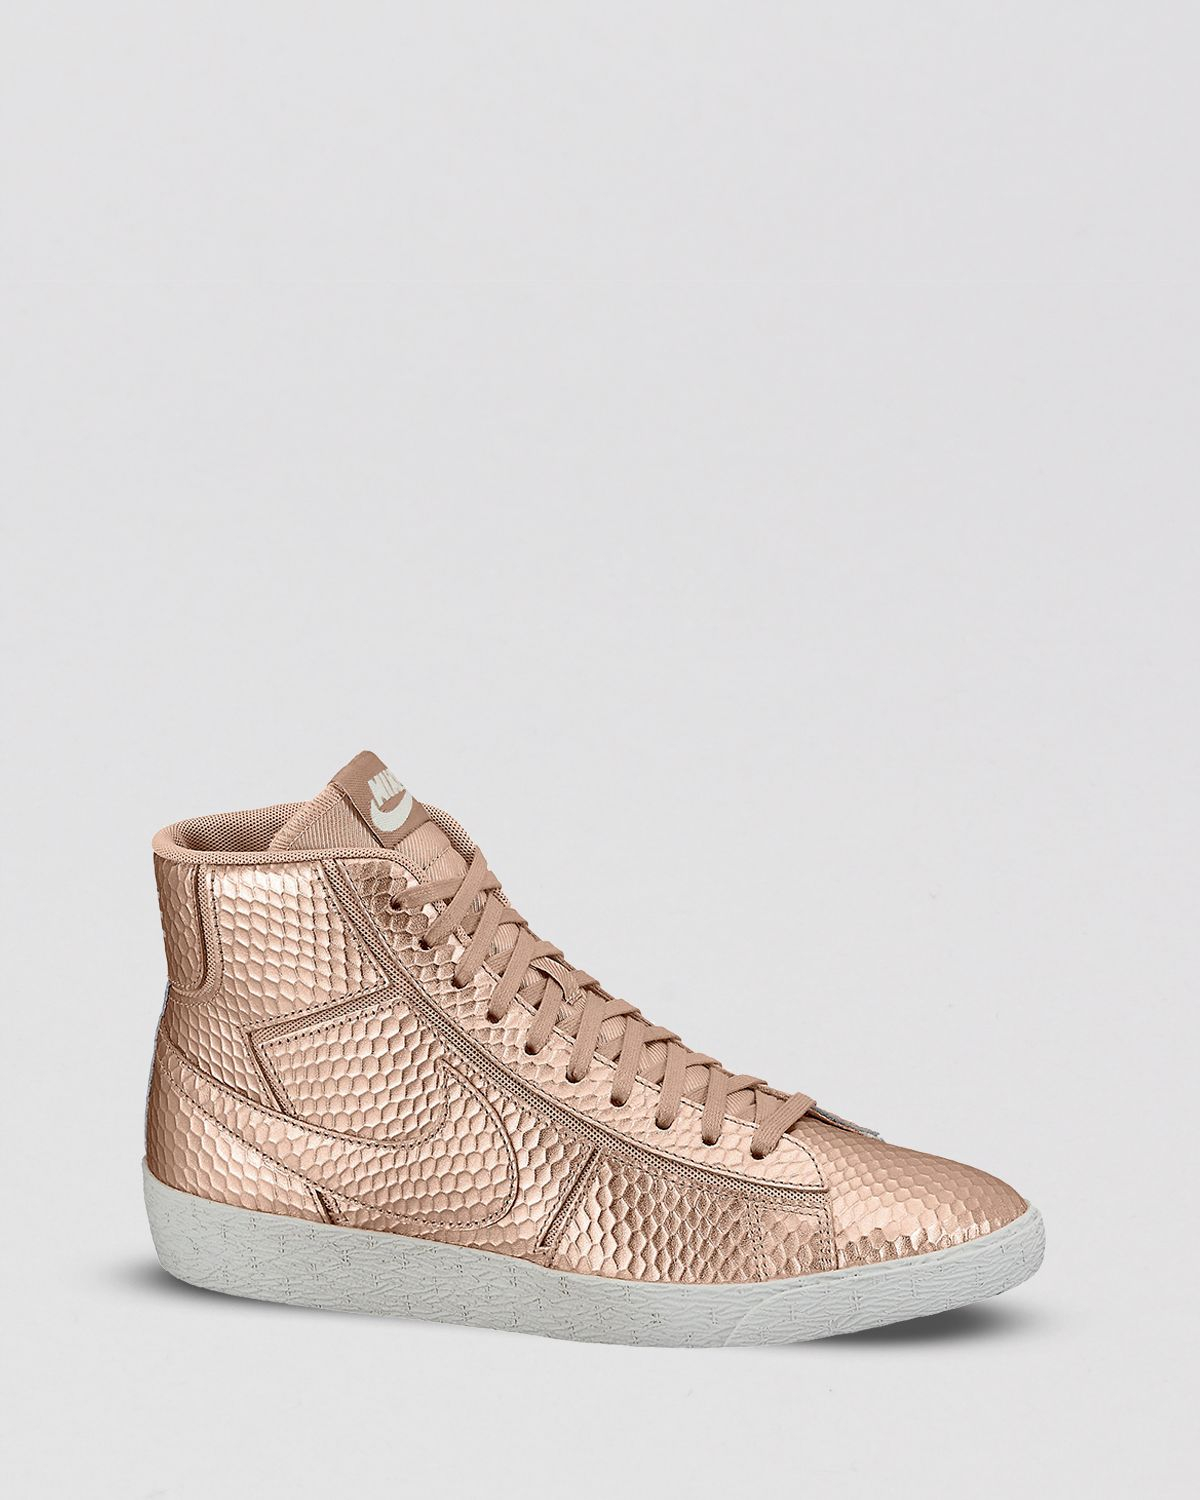 nike blazer mid cut out premium sneakers-gold